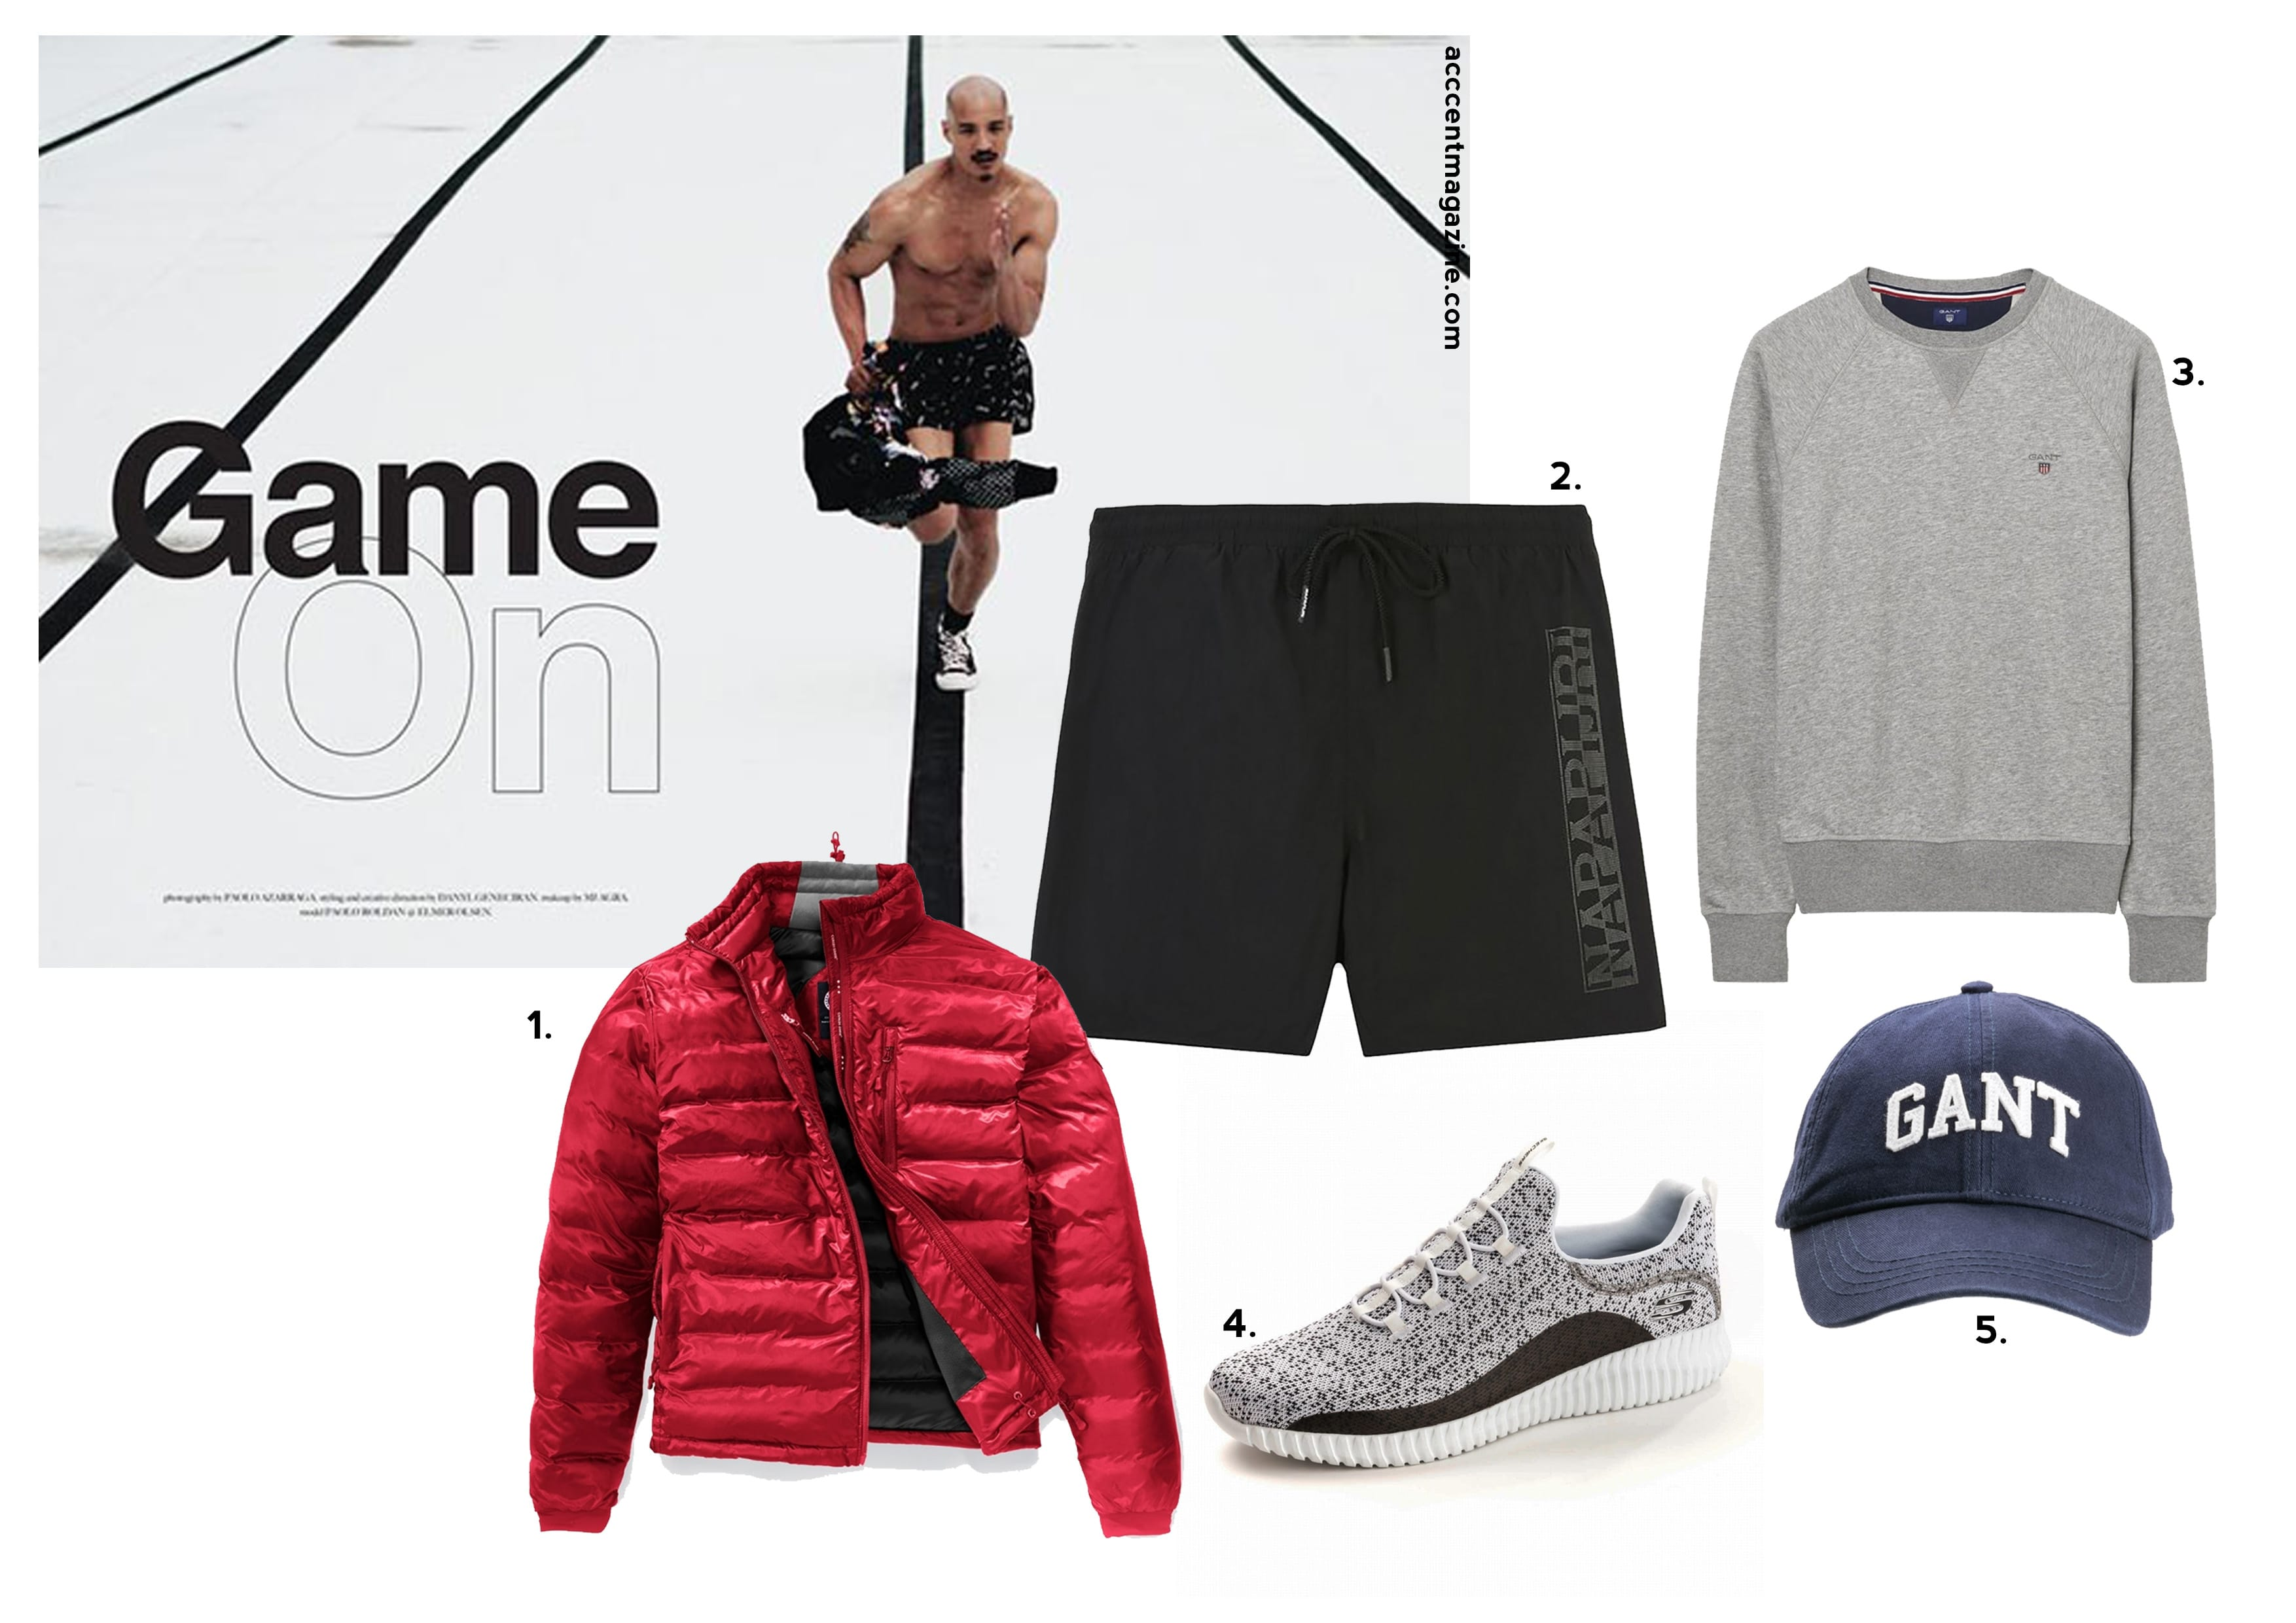 Anthony Joshua, World Champion, Boxing, Menswear, Fashion, Sports, Gym, Style Guide, Gift Guide, Father's Day 2018, Father of the year, Canada Goose, GANT, Napapijri, Game On